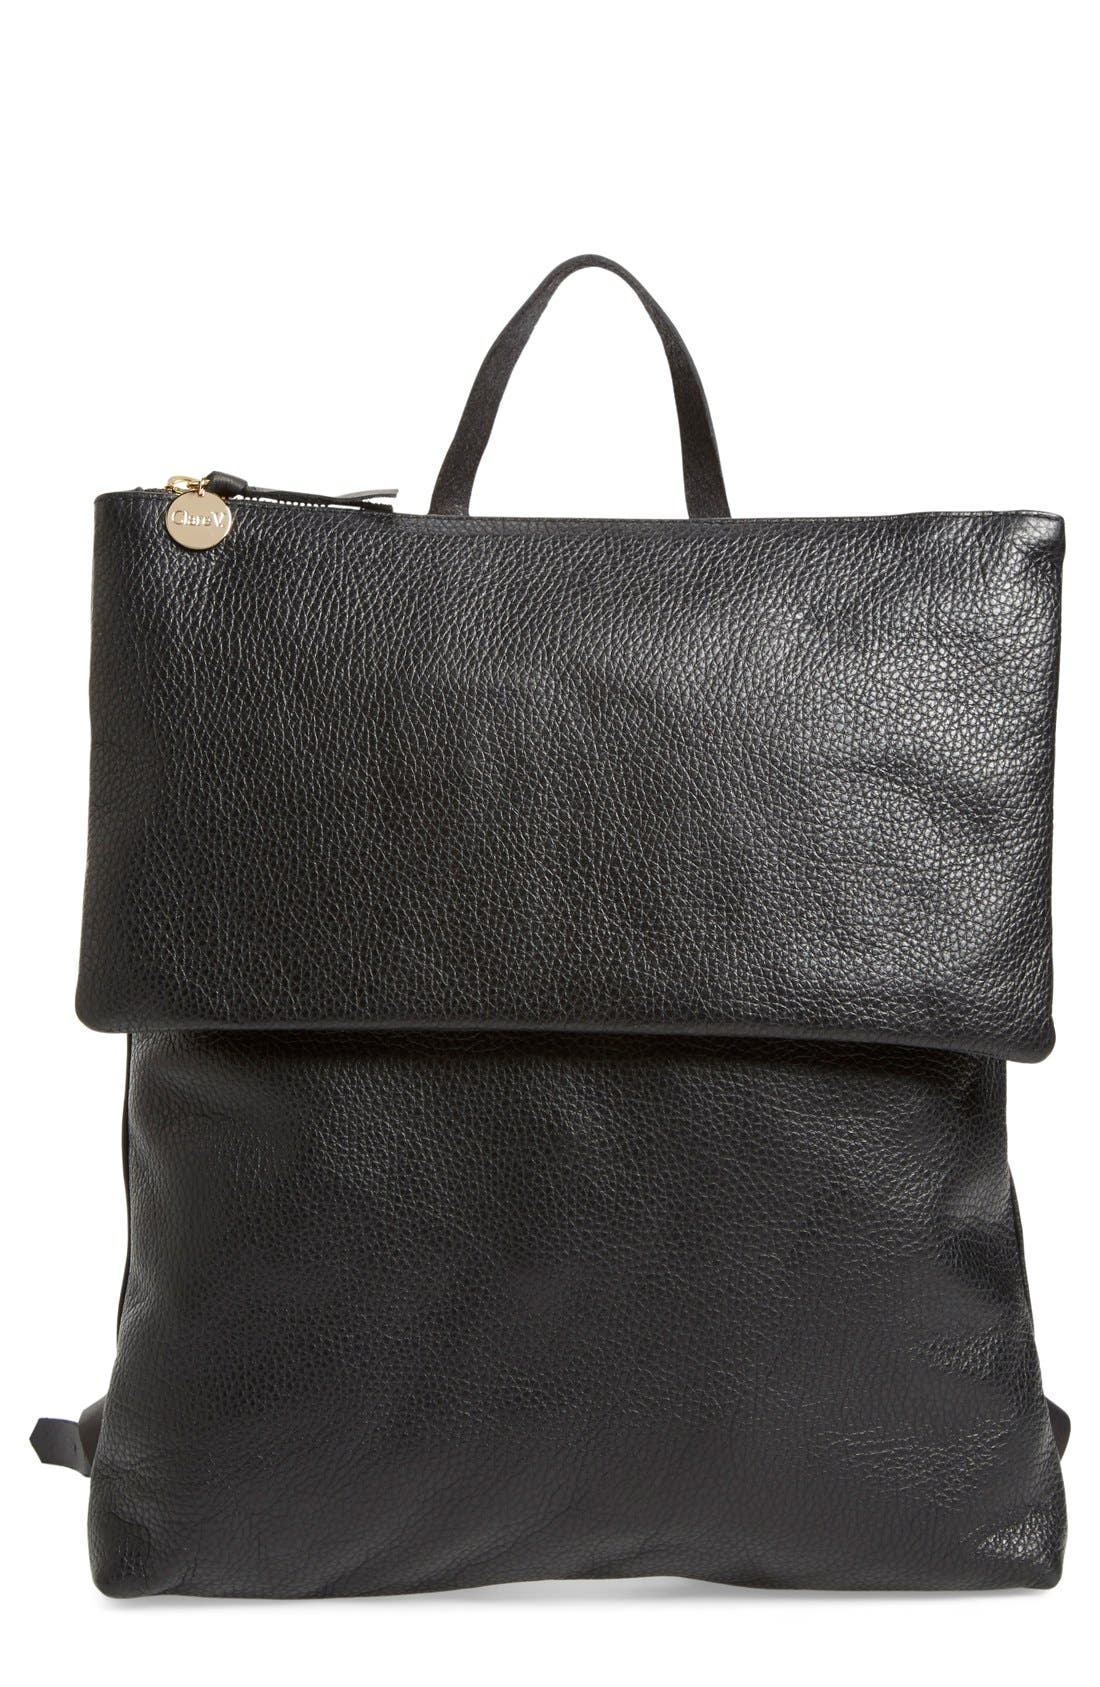 Main Image - Clare V. 'Agnes Maison' Leather Backpack